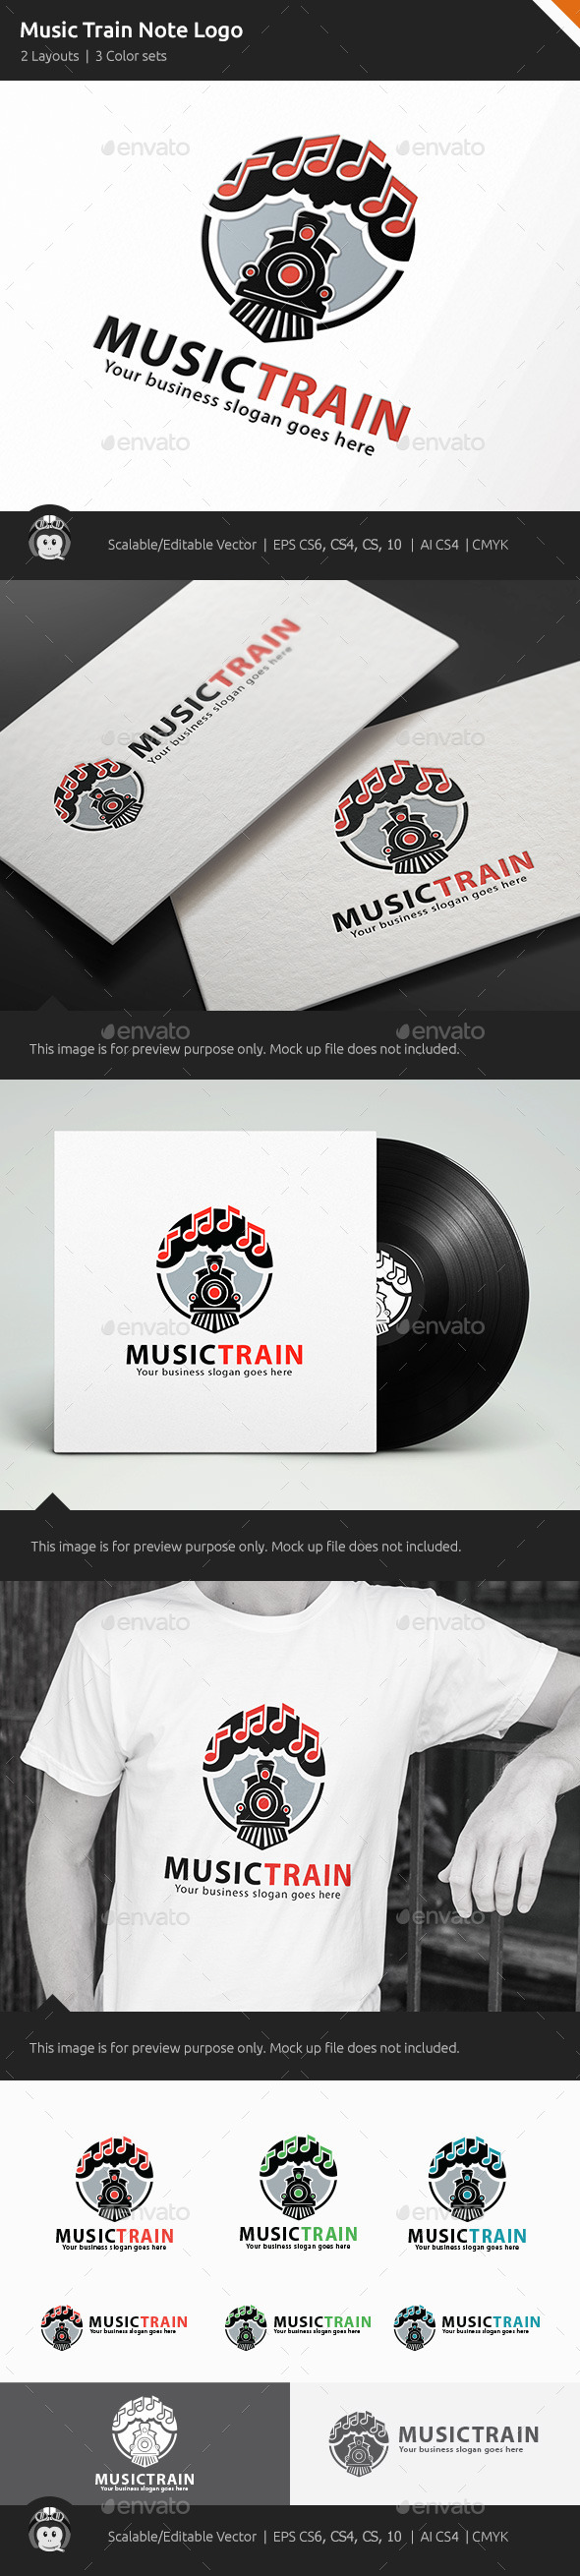 GraphicRiver Music Train Note Logo 11266020